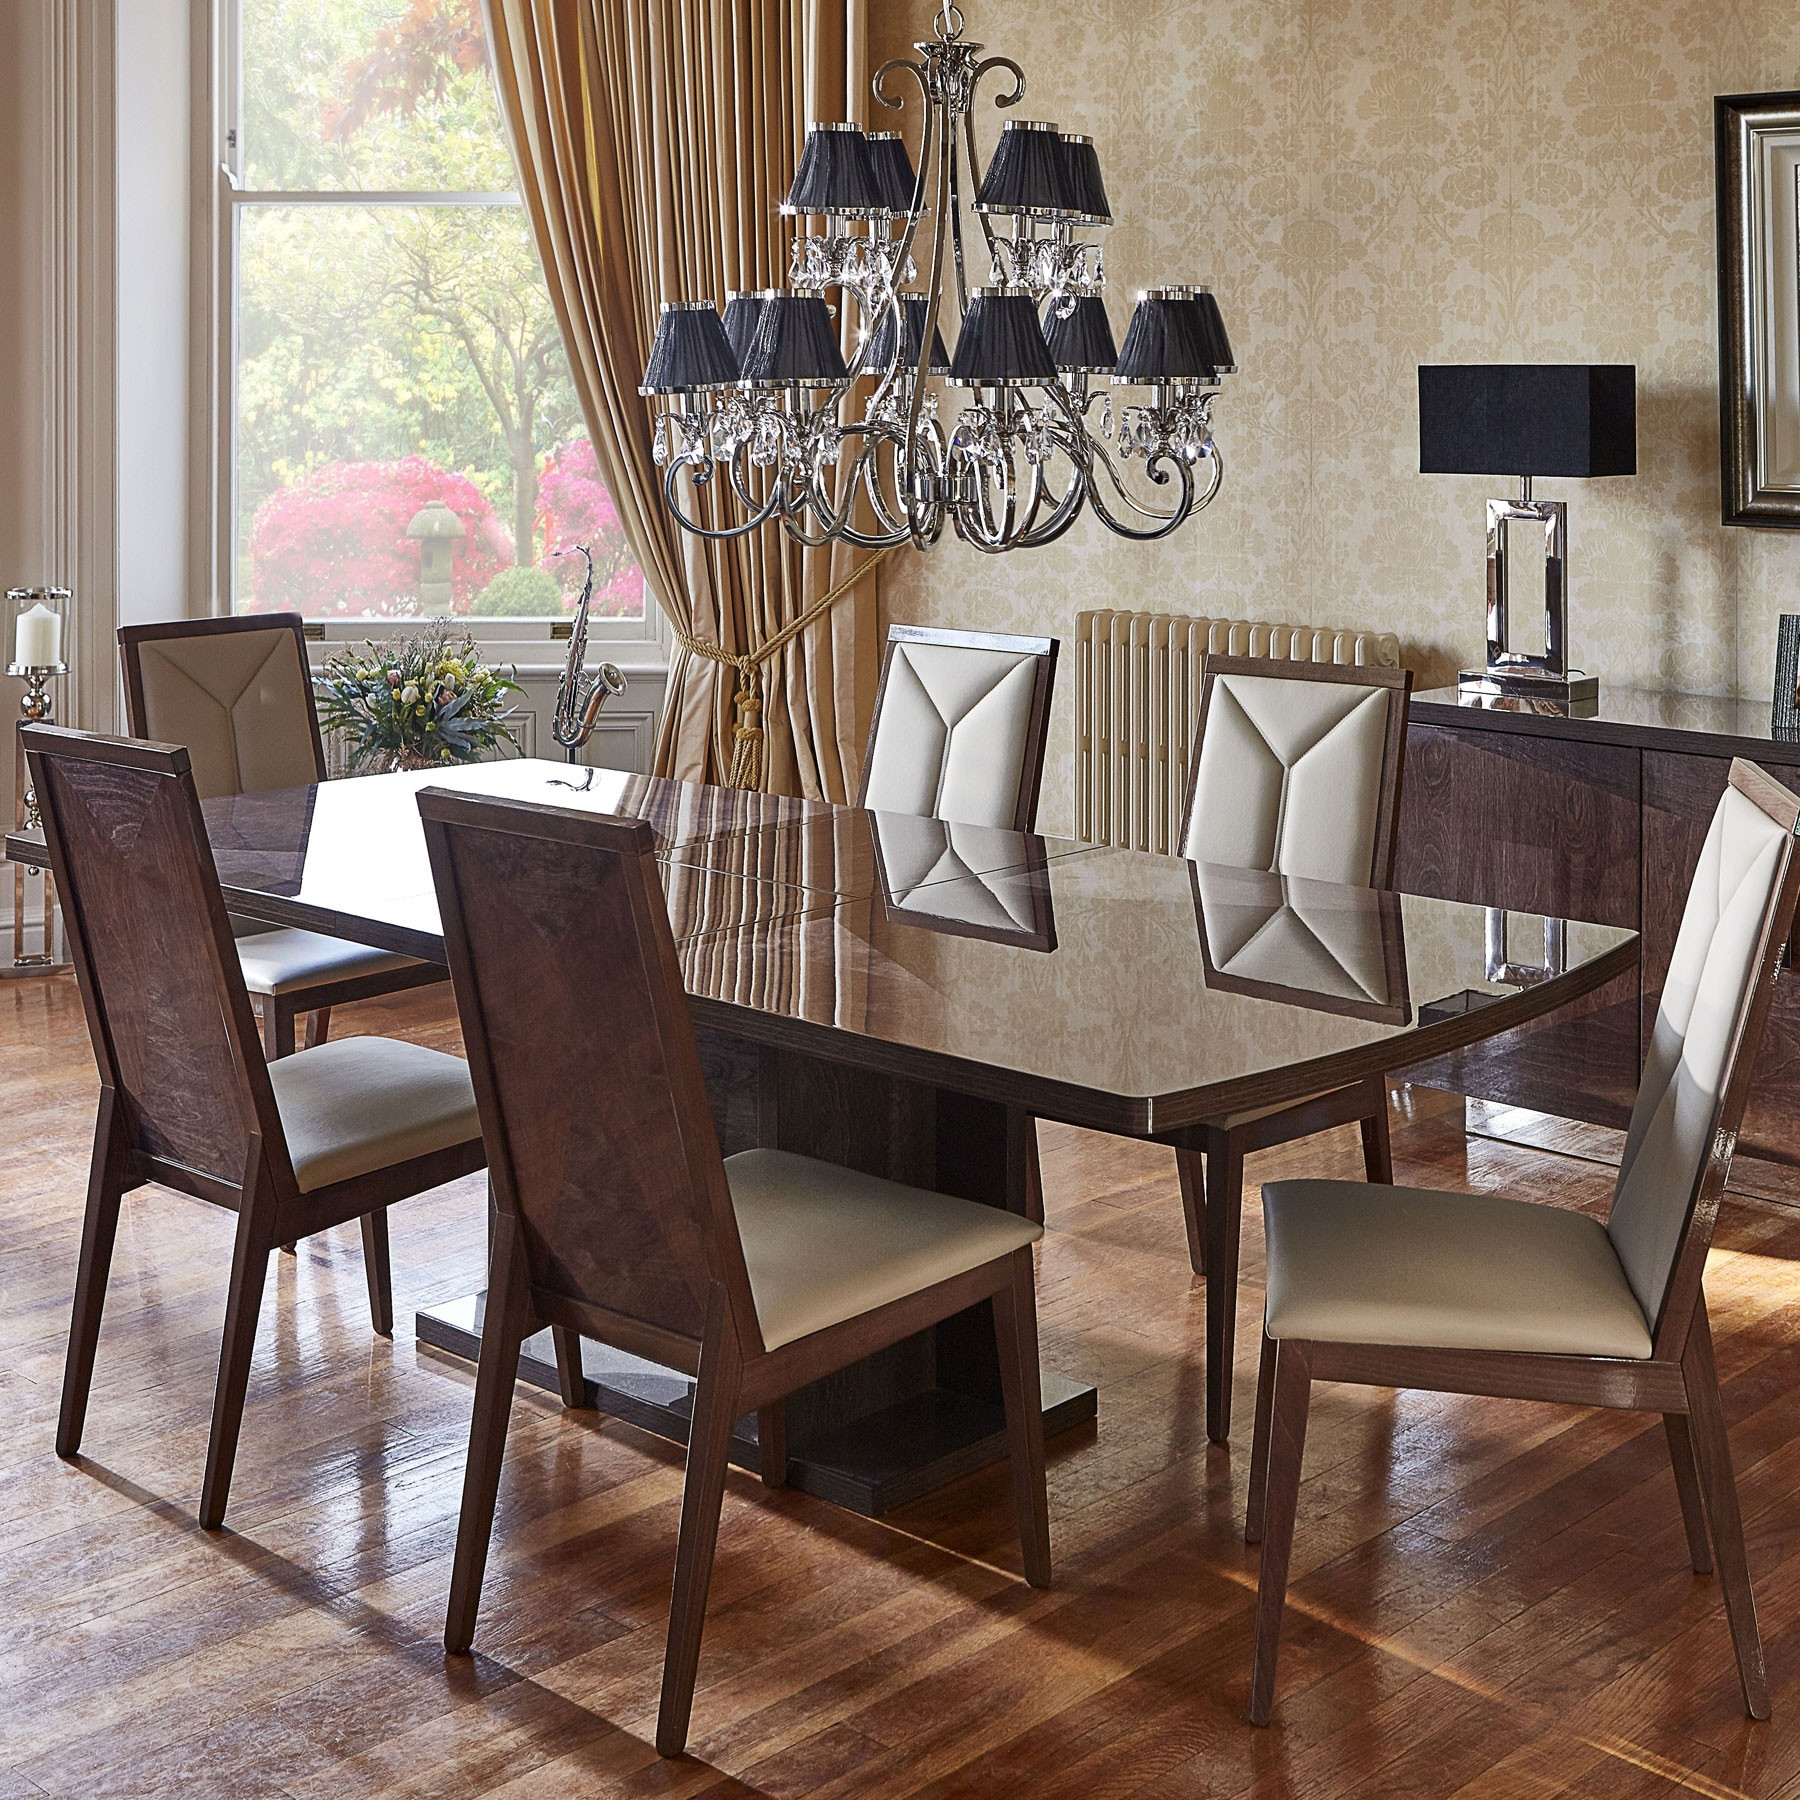 Vogue High Gloss Extending Dining Table & 6 Chairs For Most Recently Released High Gloss Dining Tables And Chairs (Gallery 17 of 25)